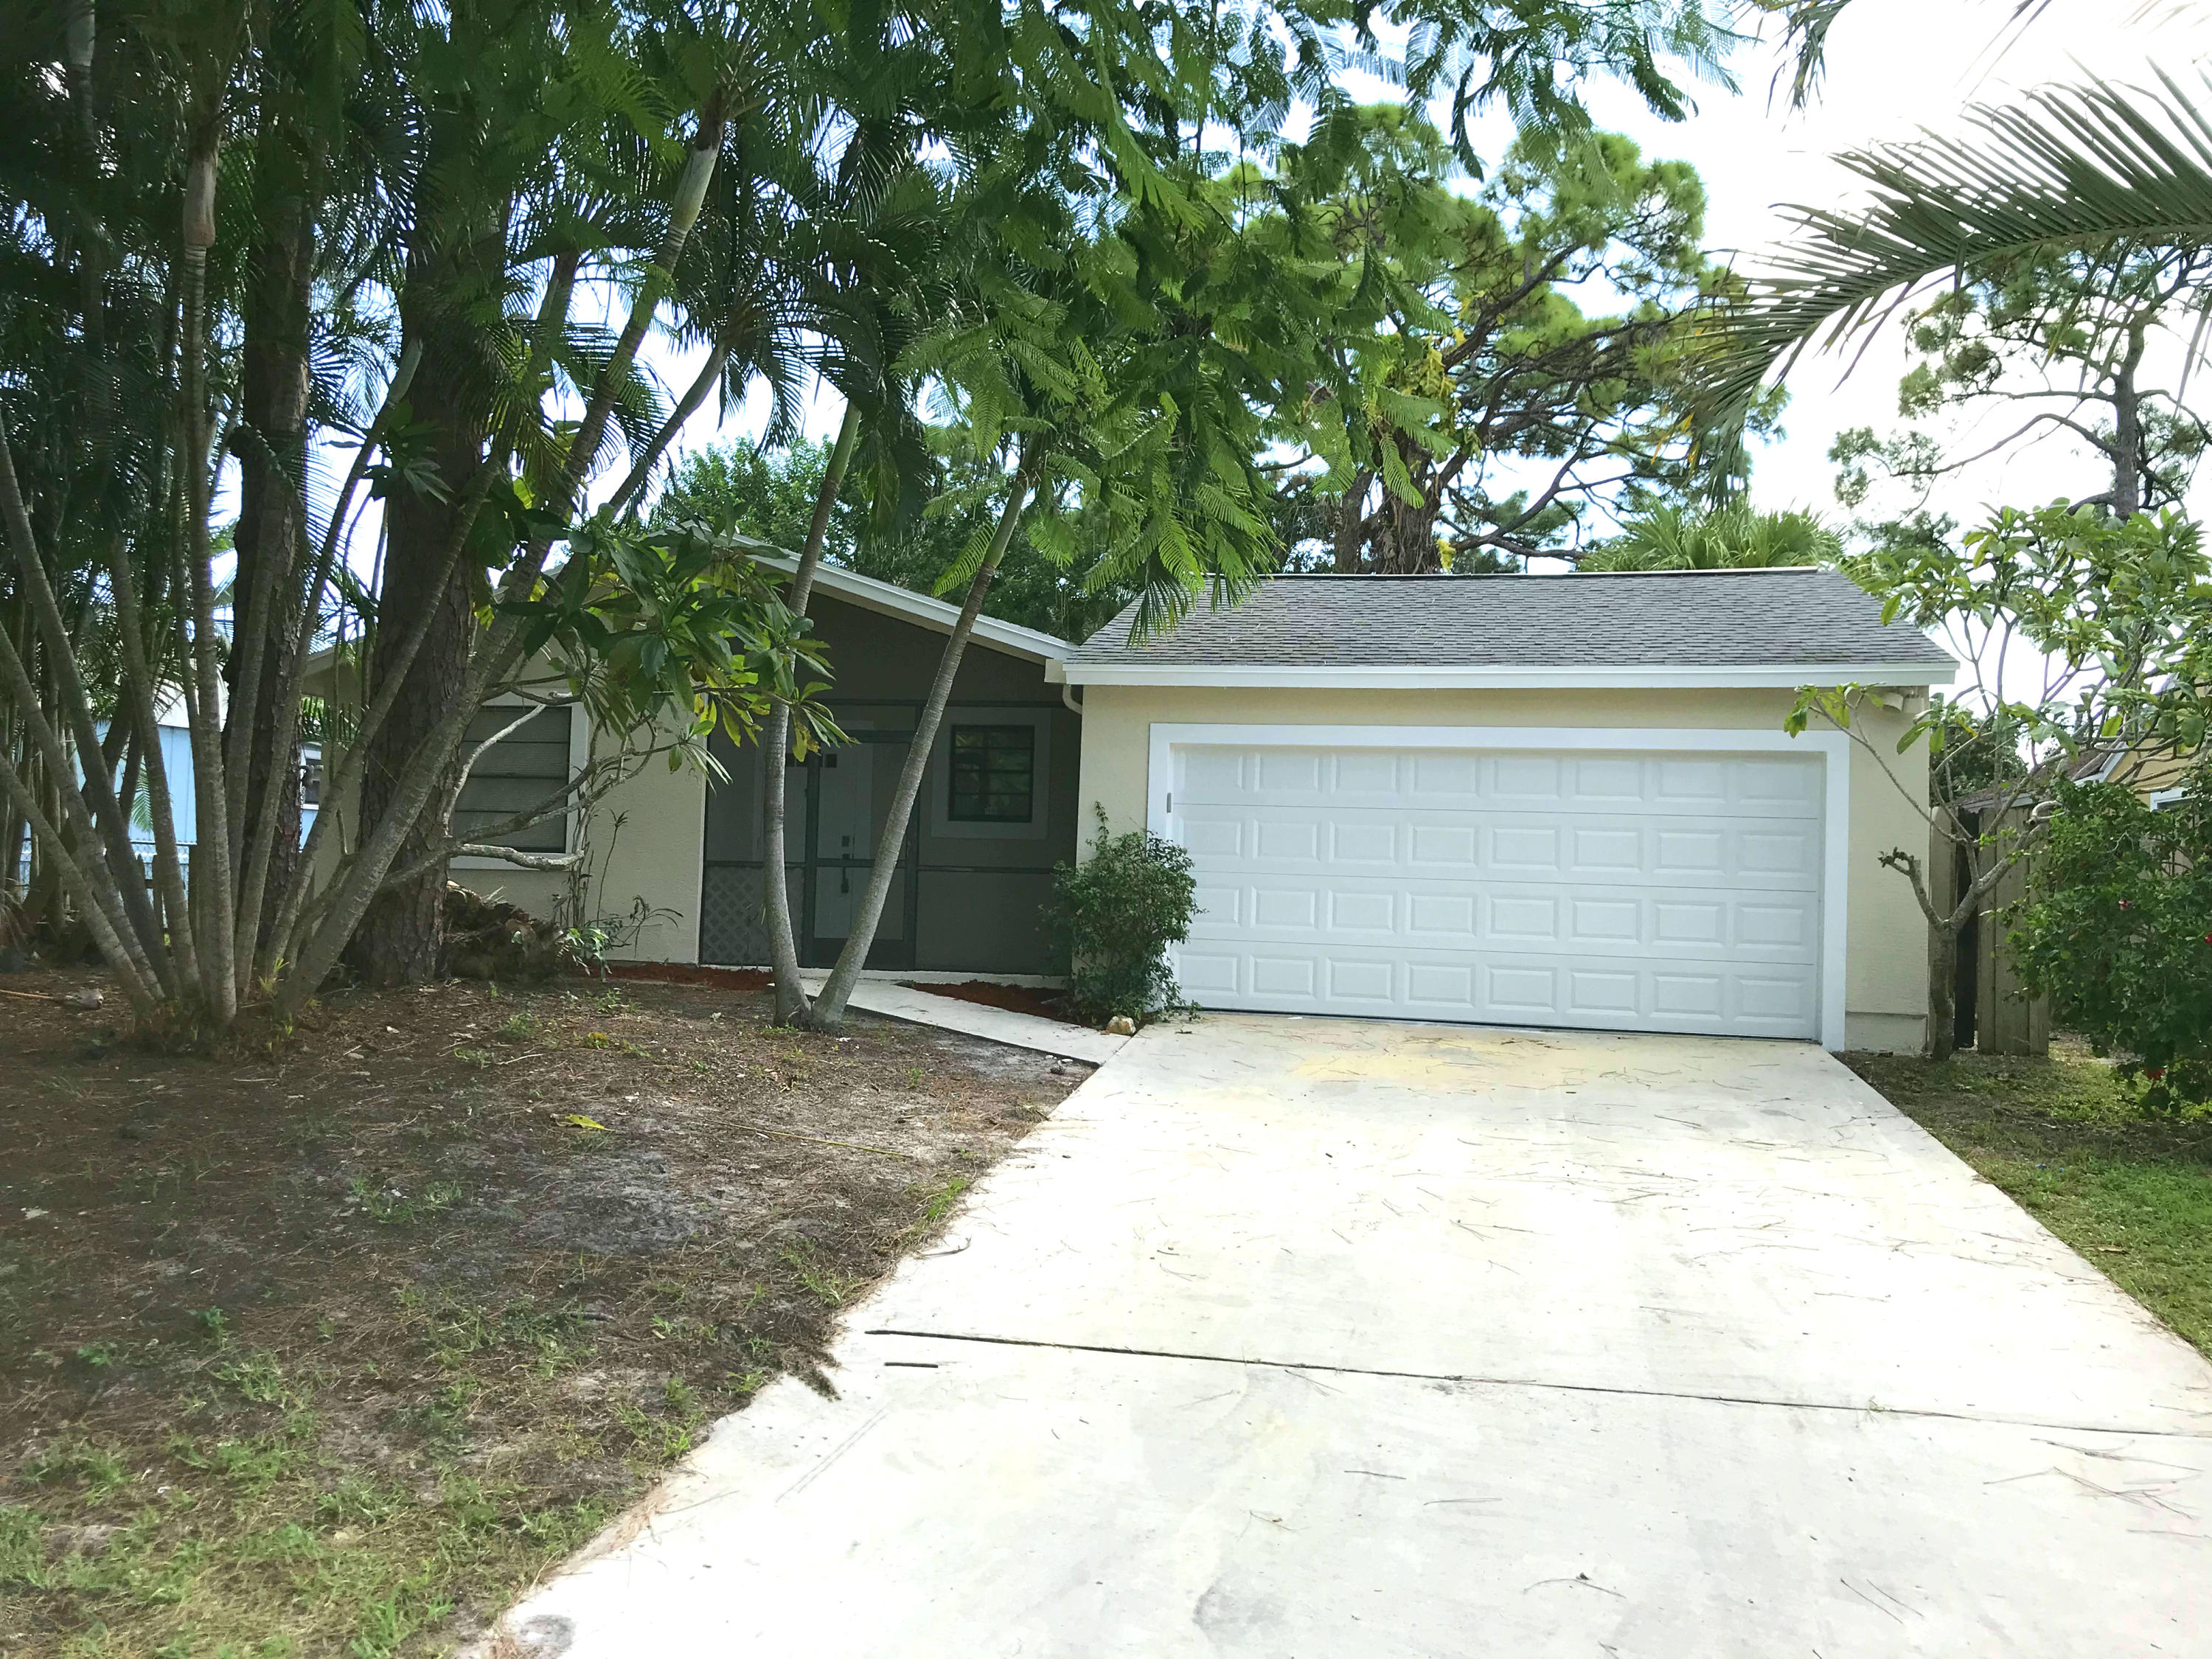 NORTH PALM BEACH HEIGHTS REAL ESTATE